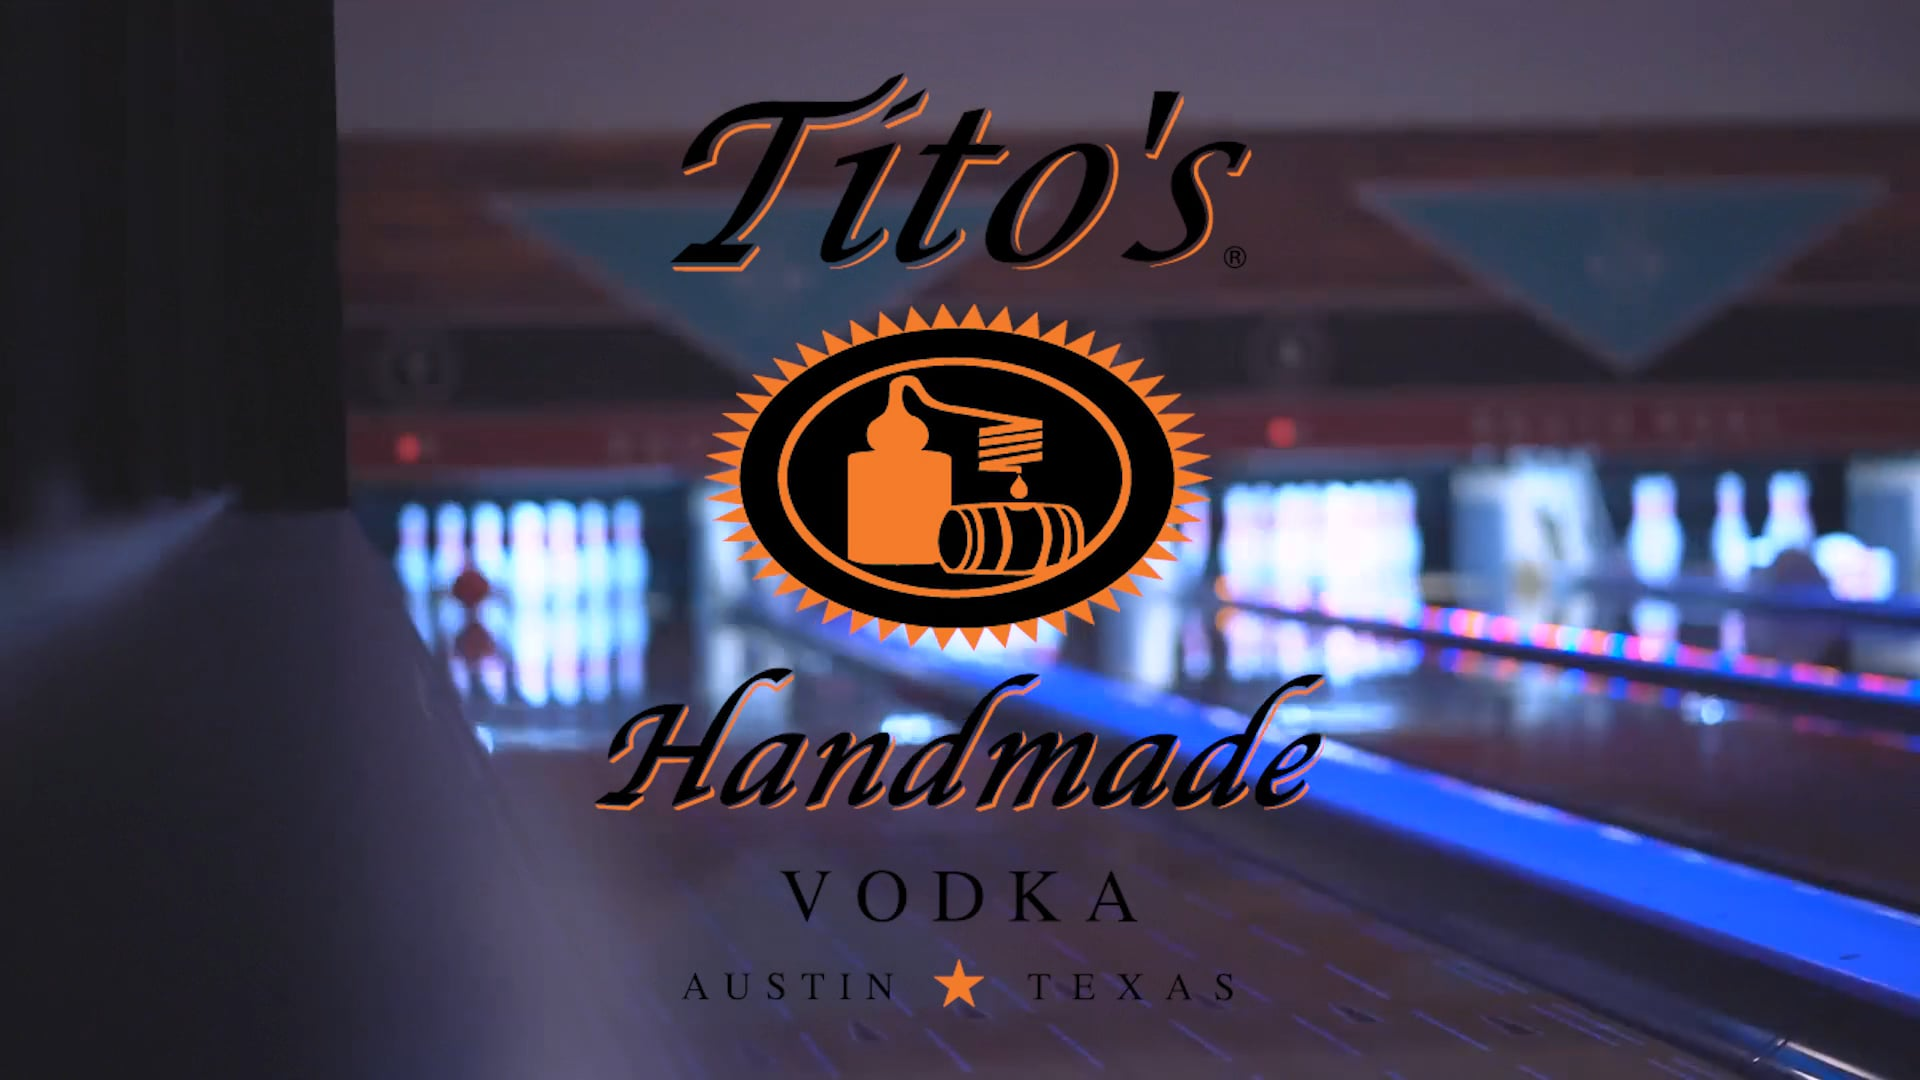 Tito's Kingpins of Industry Event